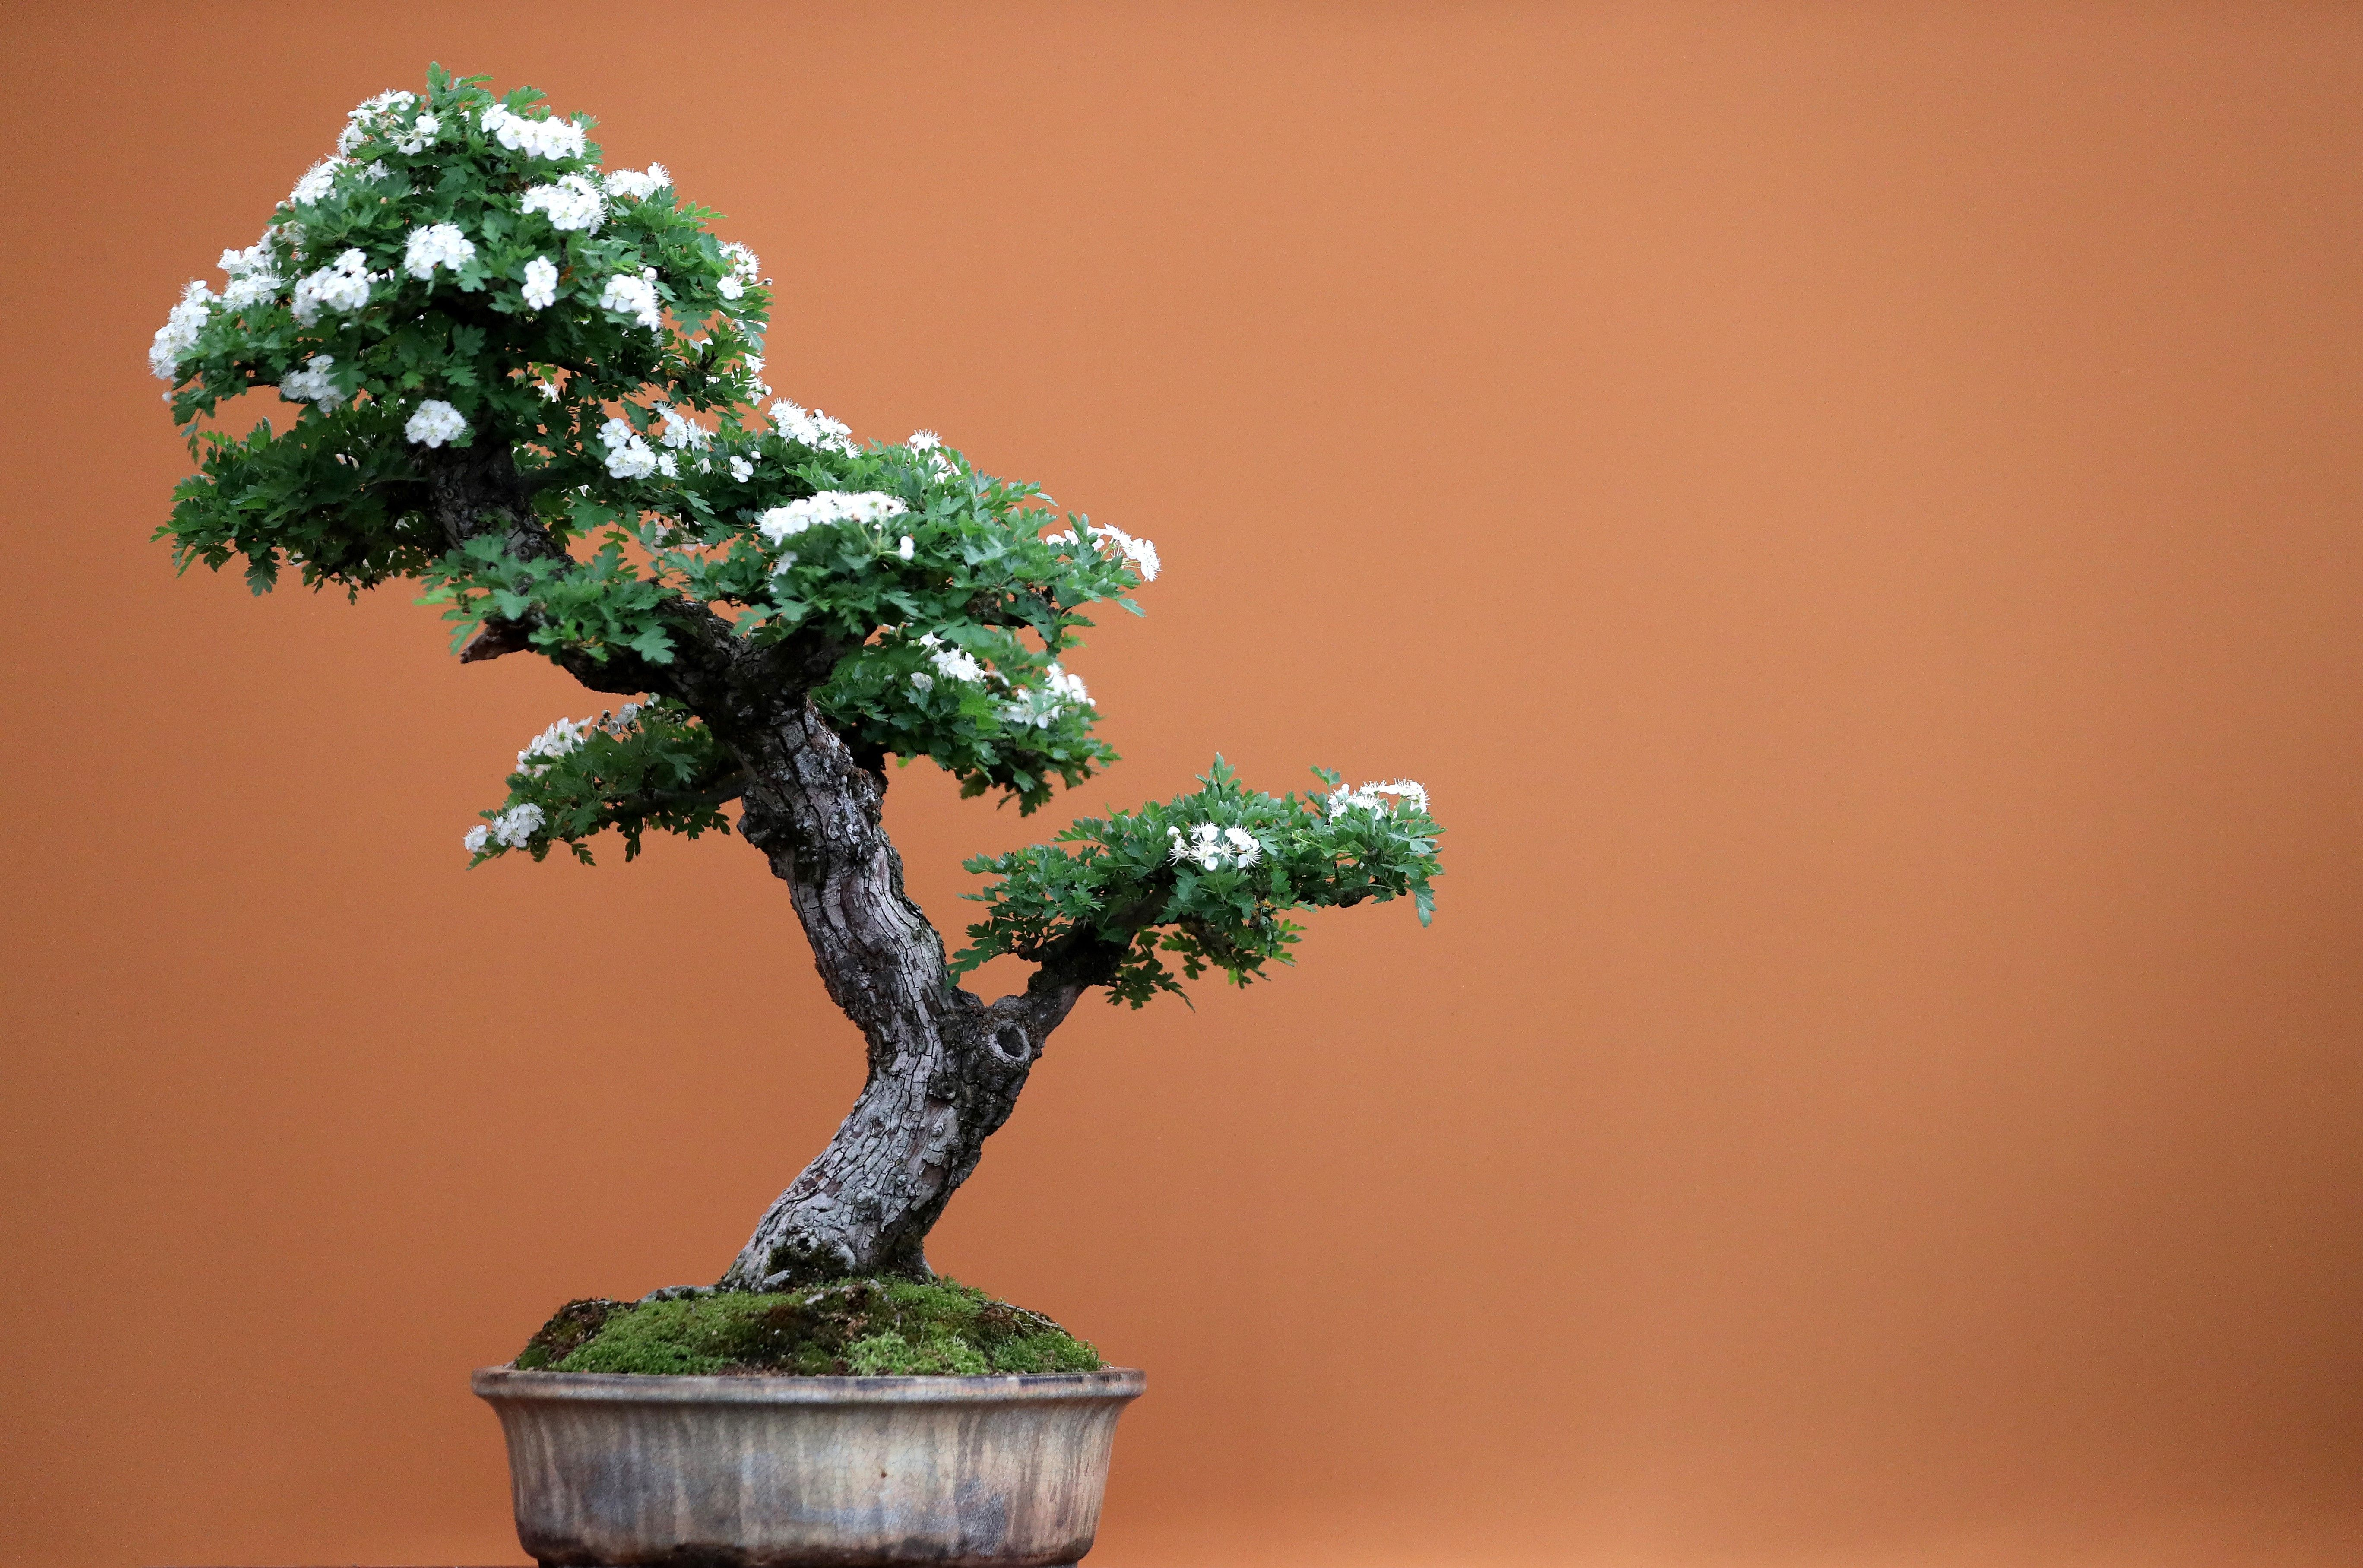 A flowering bonsai tree is pictured during a visit the 2018 Chelsea Flower Show in London on May 21, 2018. (DANIEL LEAL-OLIVAS/AFP/Getty Images)